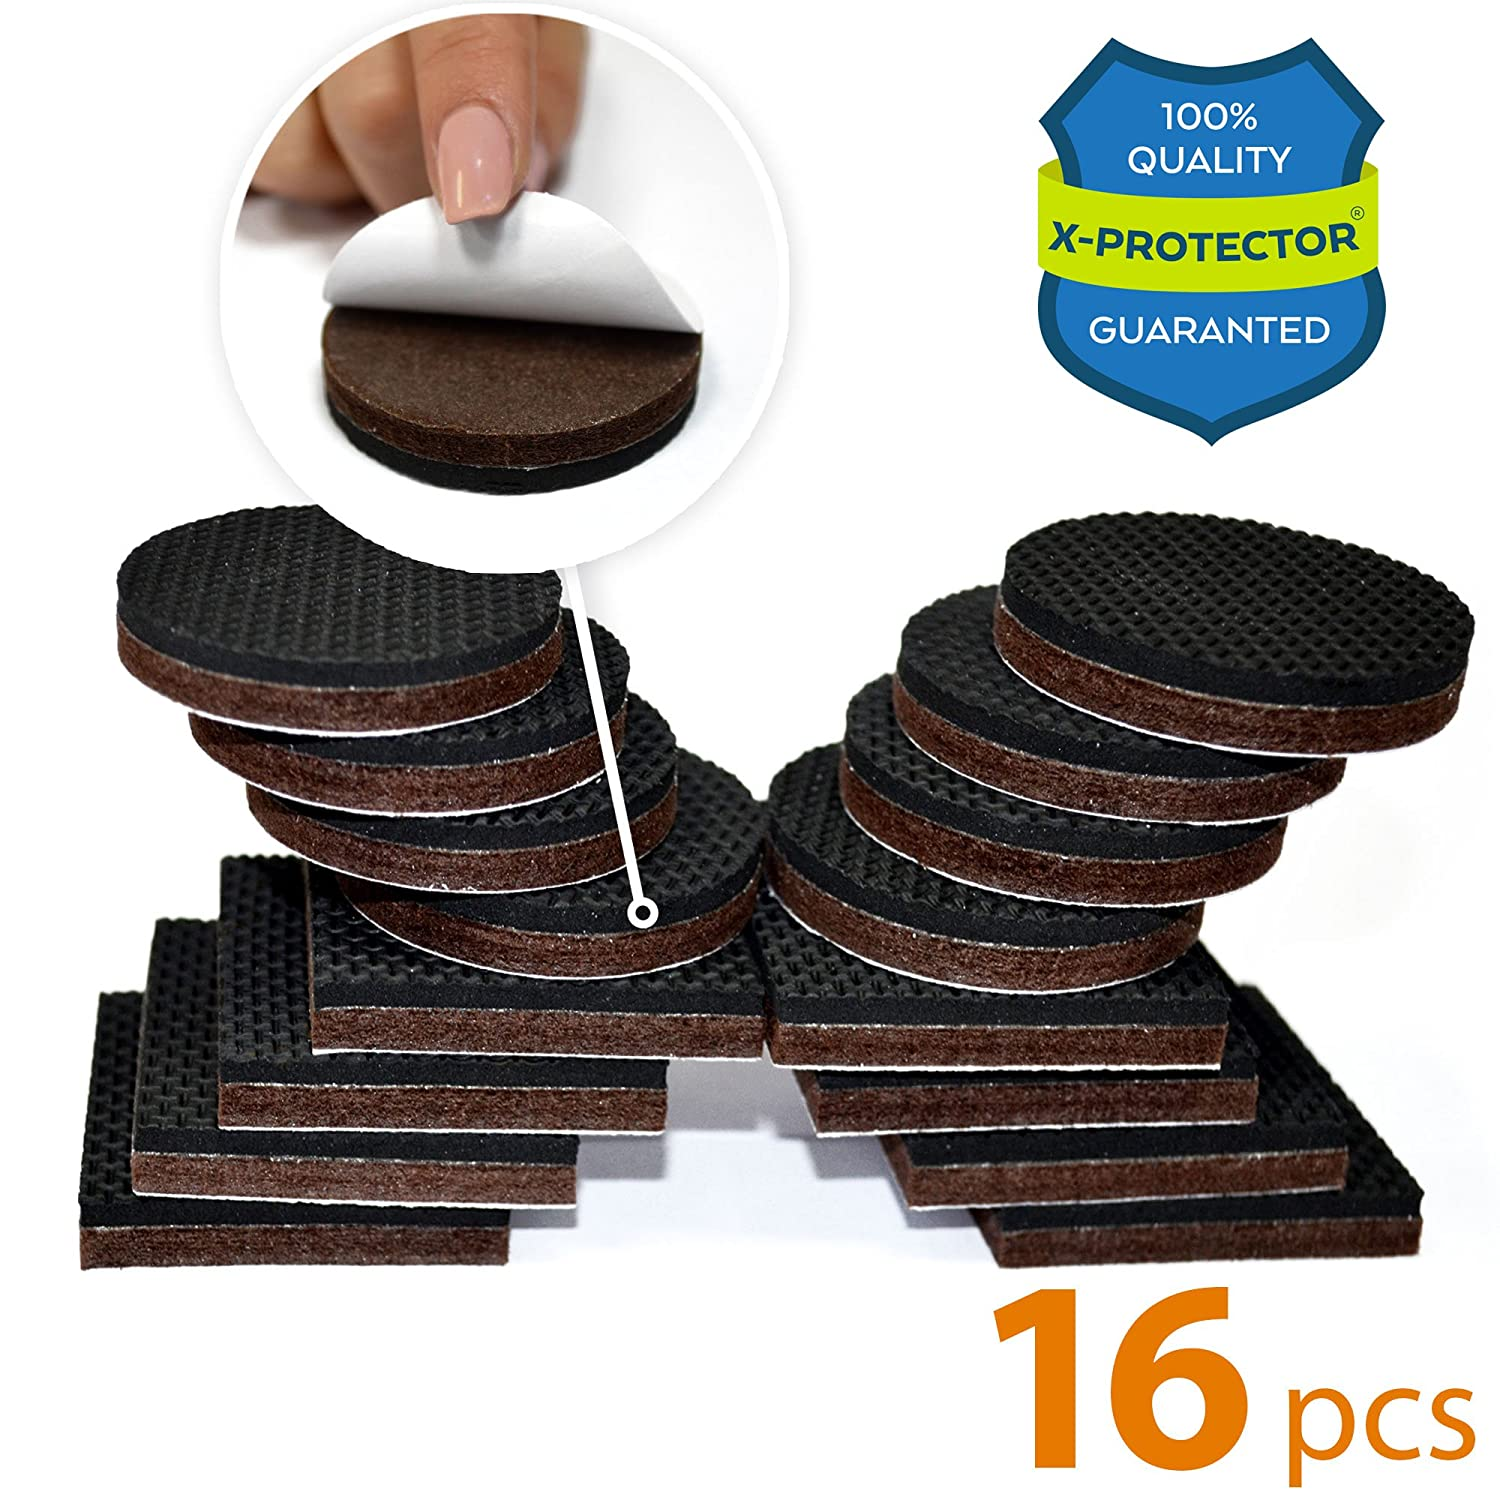 hires slider glide floor wood chair pad finest protectors brown with yueton nail pads feet pcs socks table on leg felt furniture melonboat cool